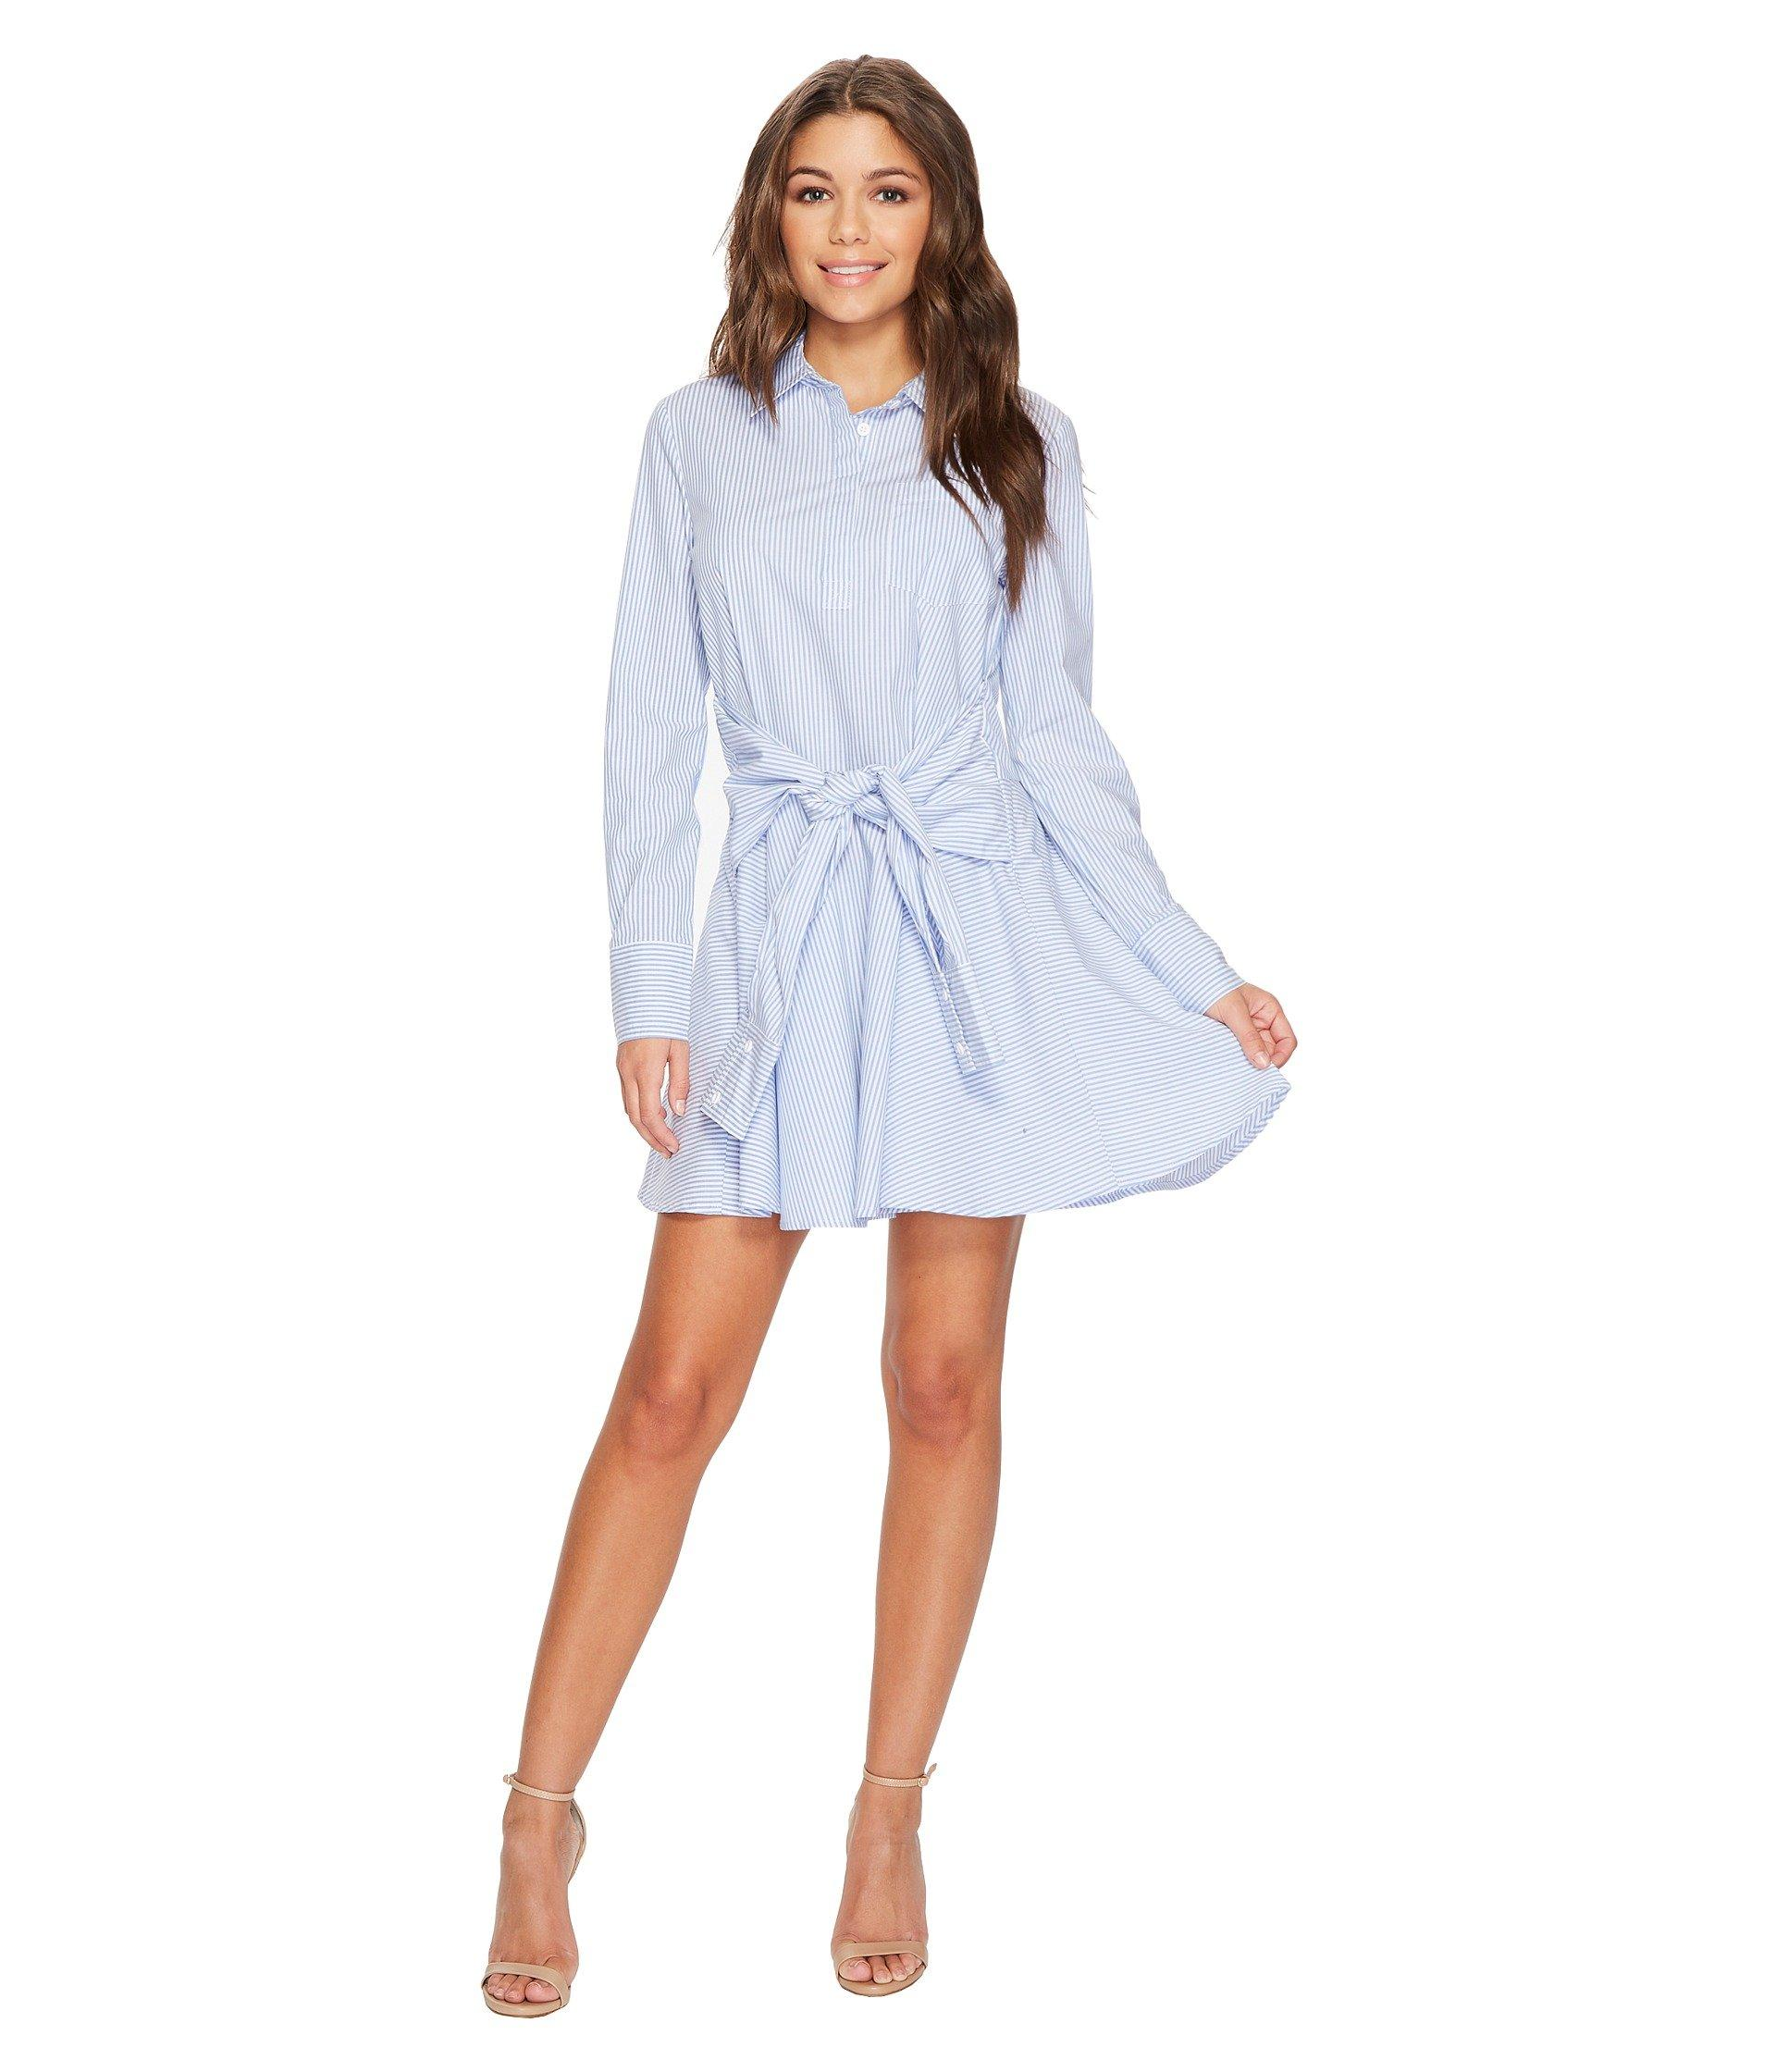 4ad4133511 Romeo & Juliet Couture Striped Tie-Up Waist Shirt Dress In Blue/White